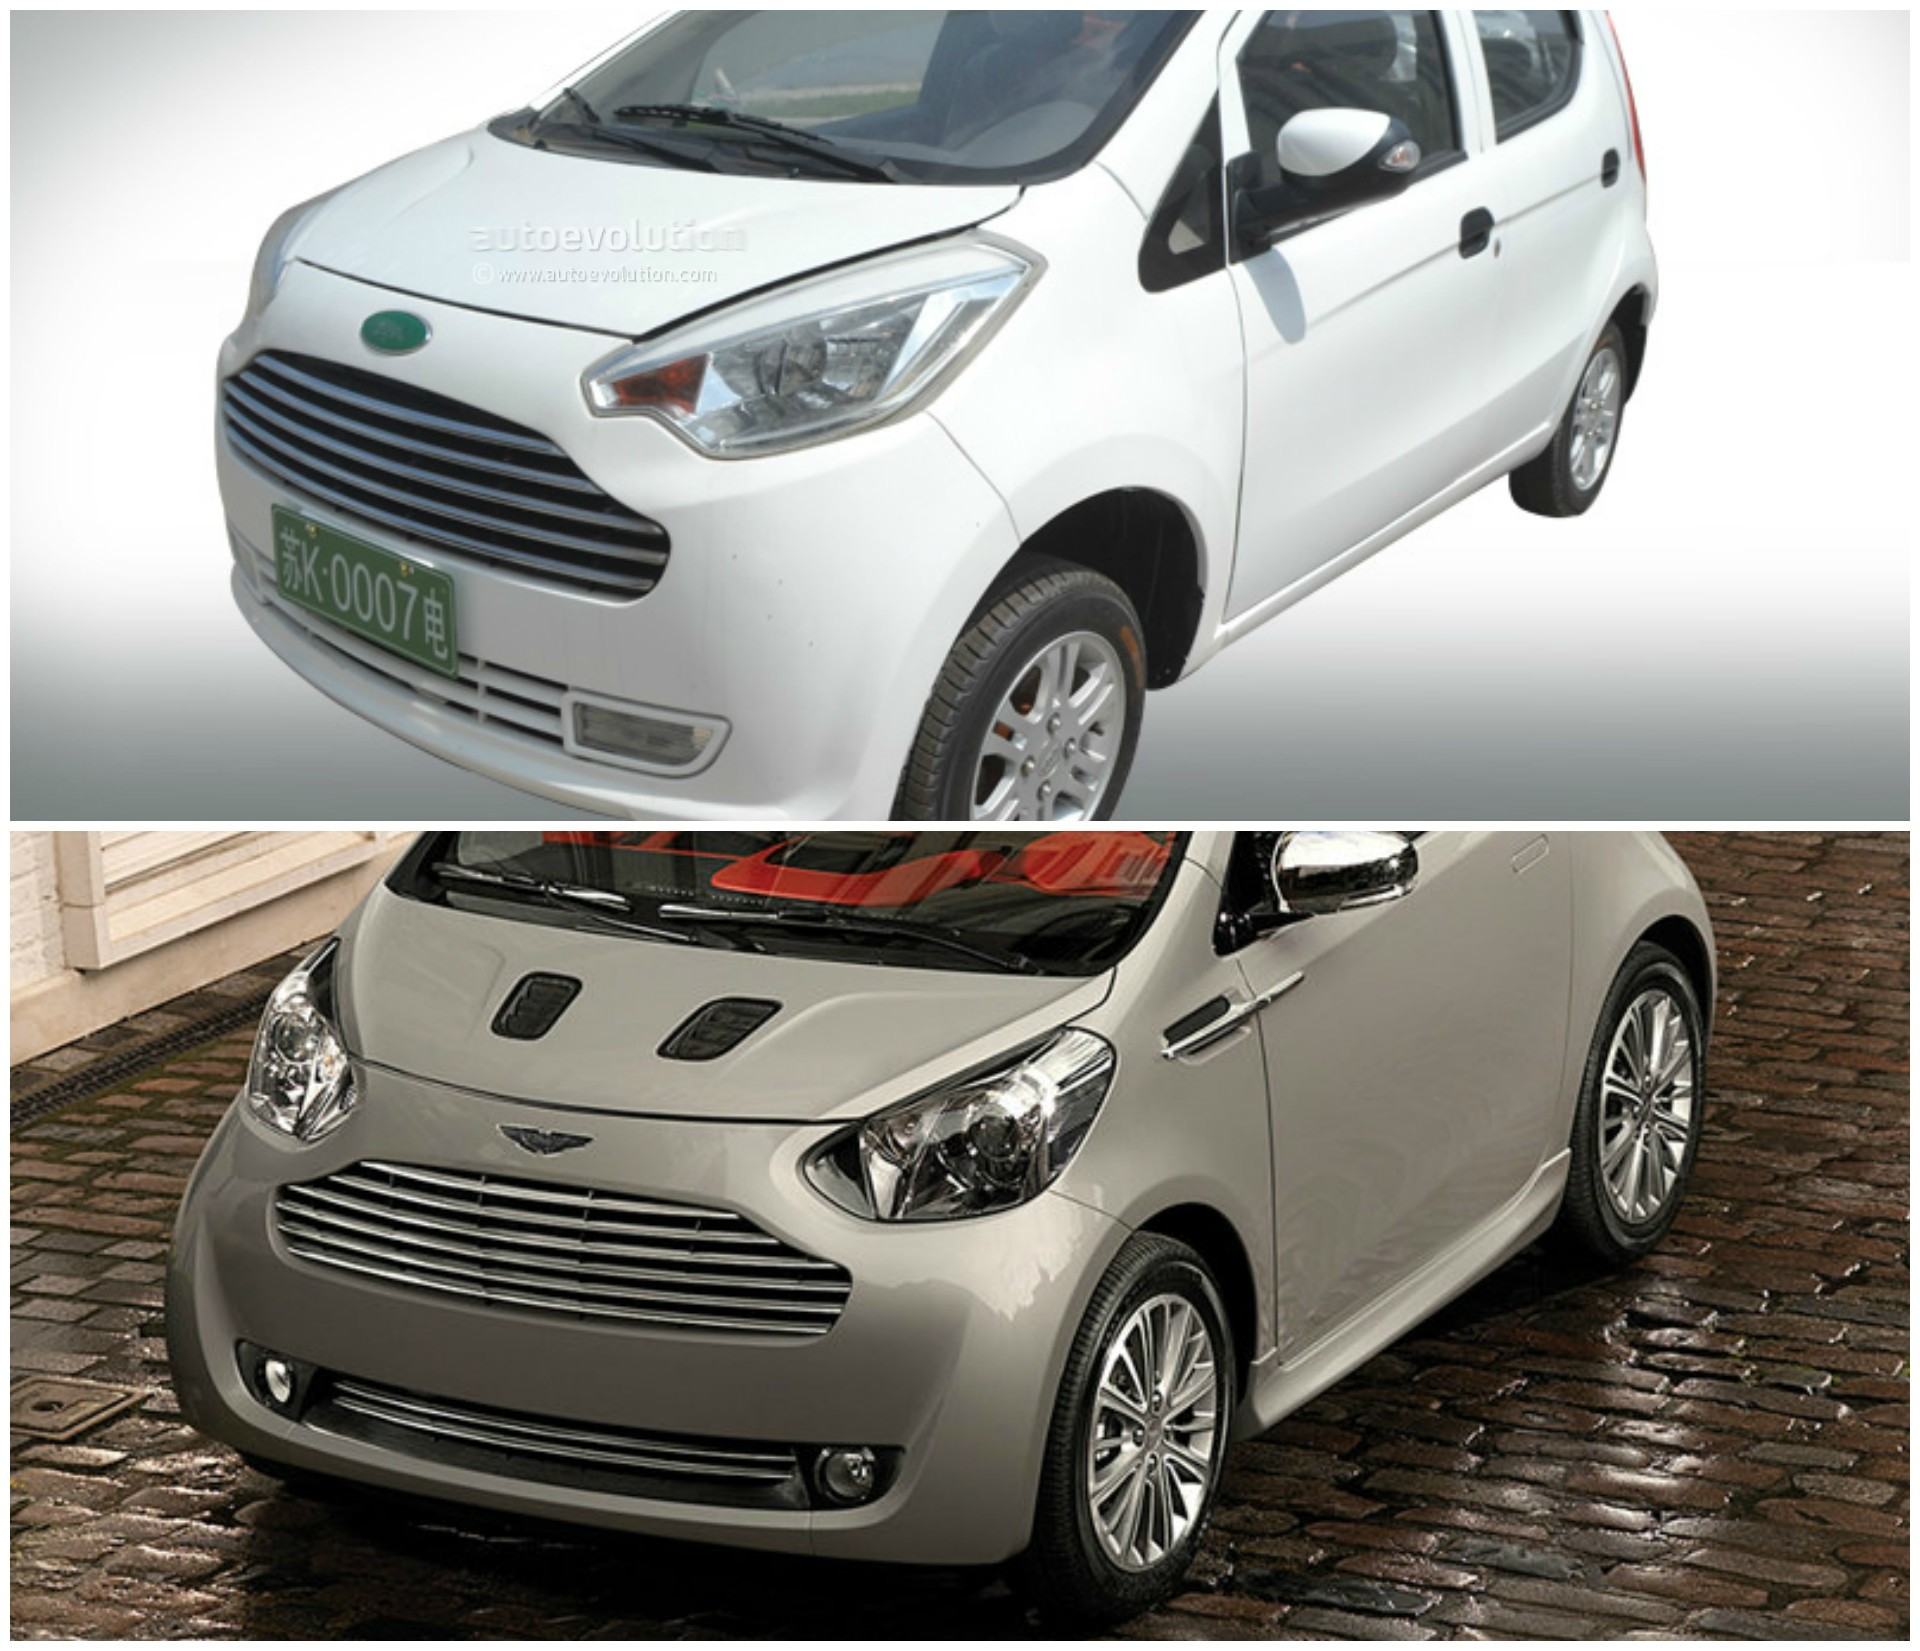 Chinese Electric Car Clones Aston Martin Cygnet And Ford